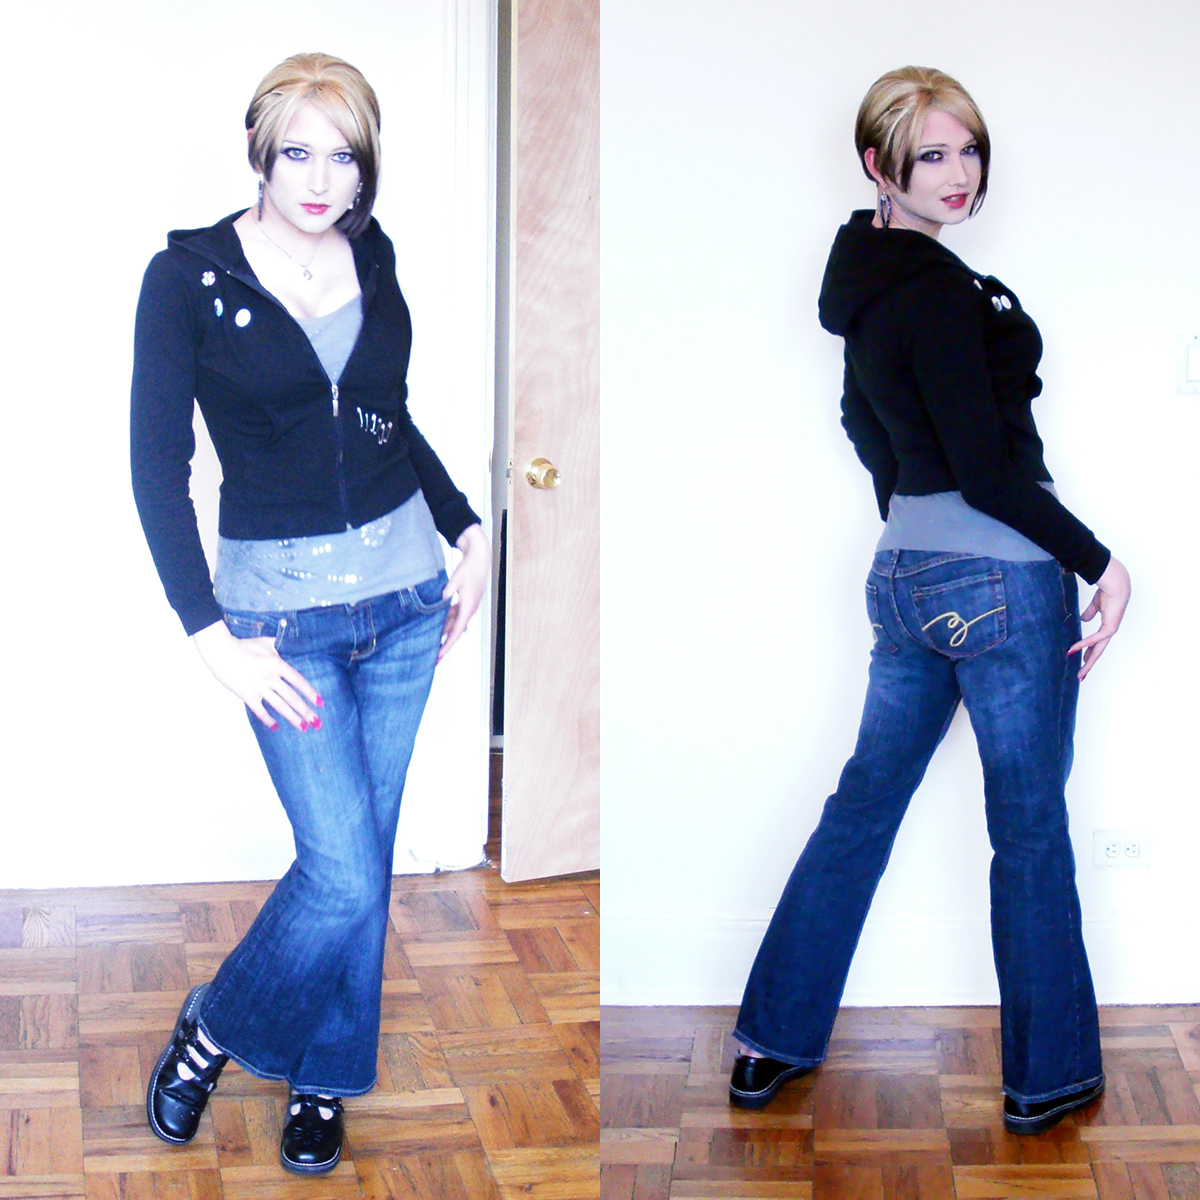 Adventures of a Gender Rebel: Showing Off My New Jeans